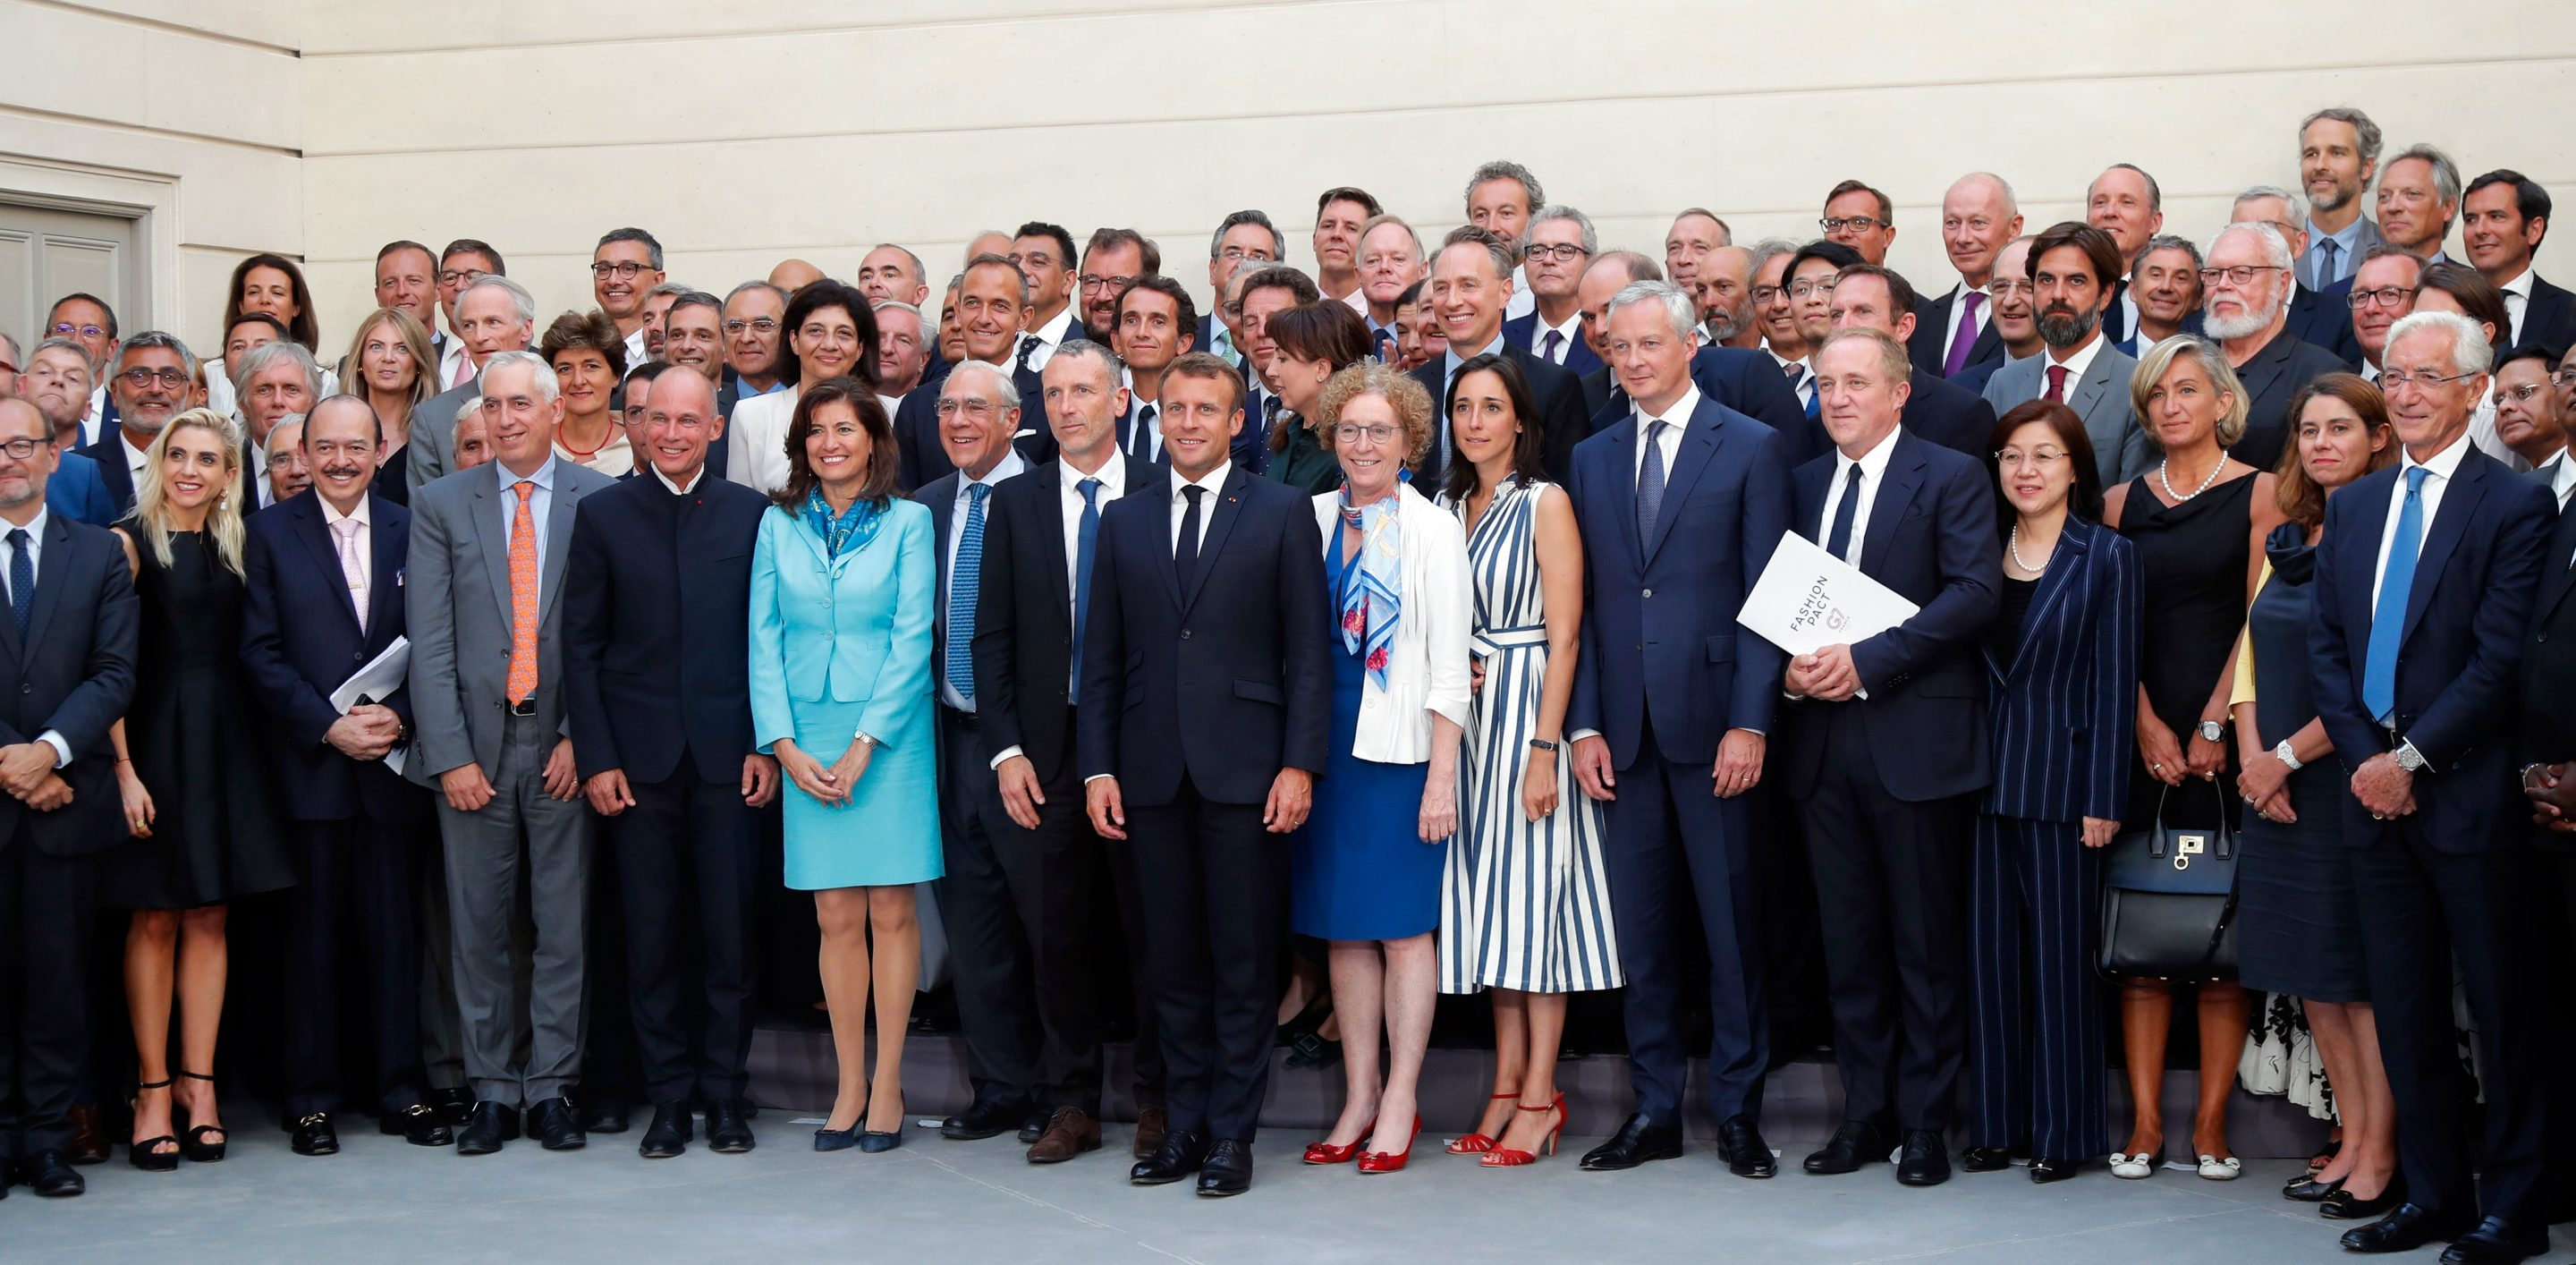 French President Emmanuel Macron, center, poses with G7-Summit civil society representatives, including Kering chairman and CEO François-Henri Pinault, right, holding the G7 Fashion Pact.